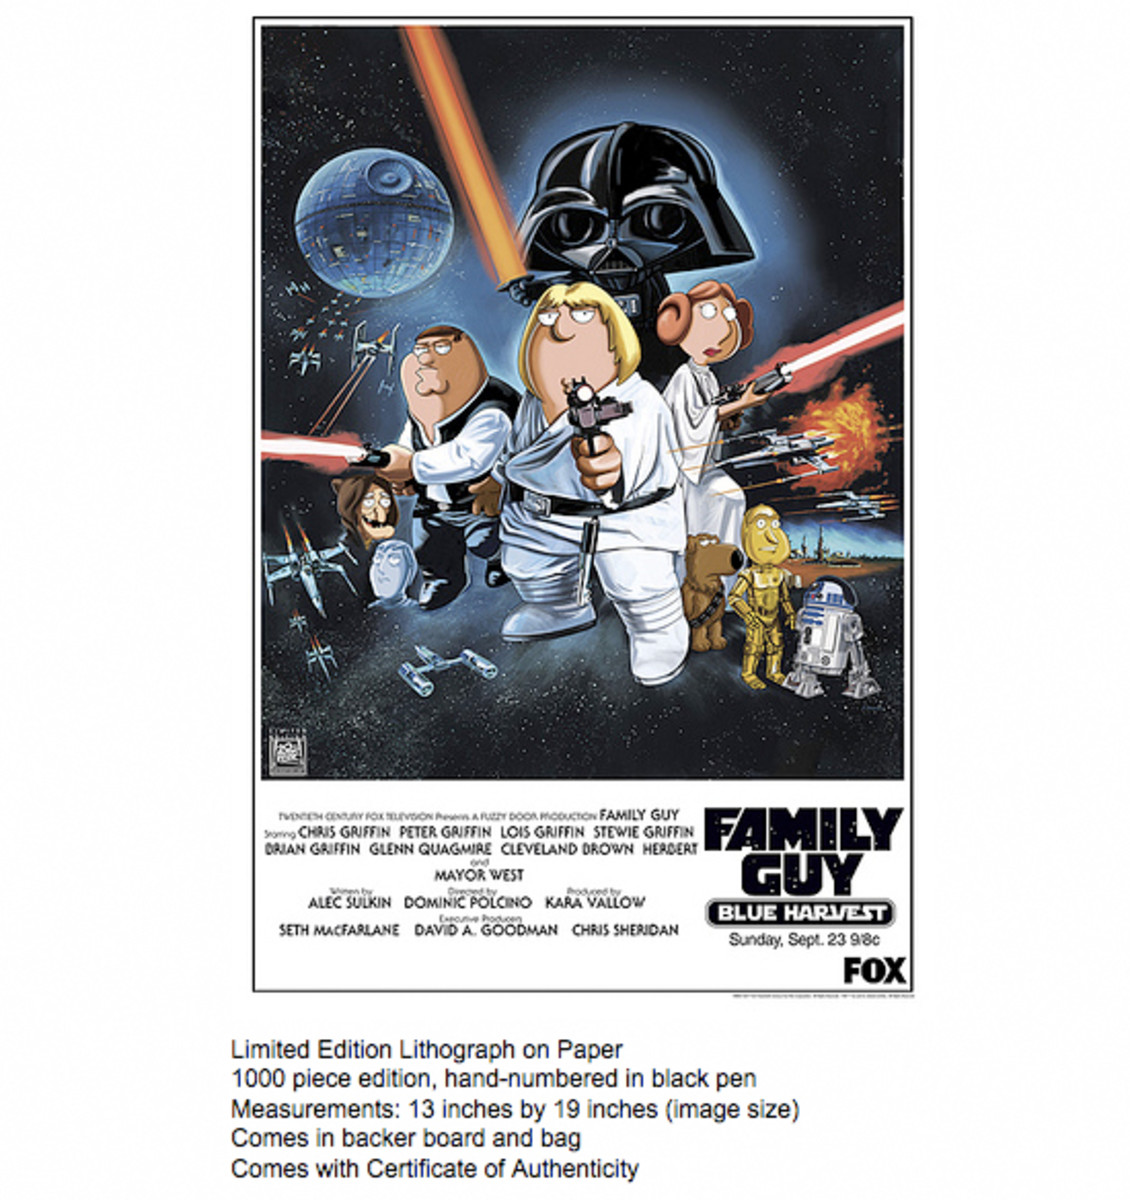 Spectacular: Family Guy C.R.A.P. Show - Blue Harvest Poster - Lithograph